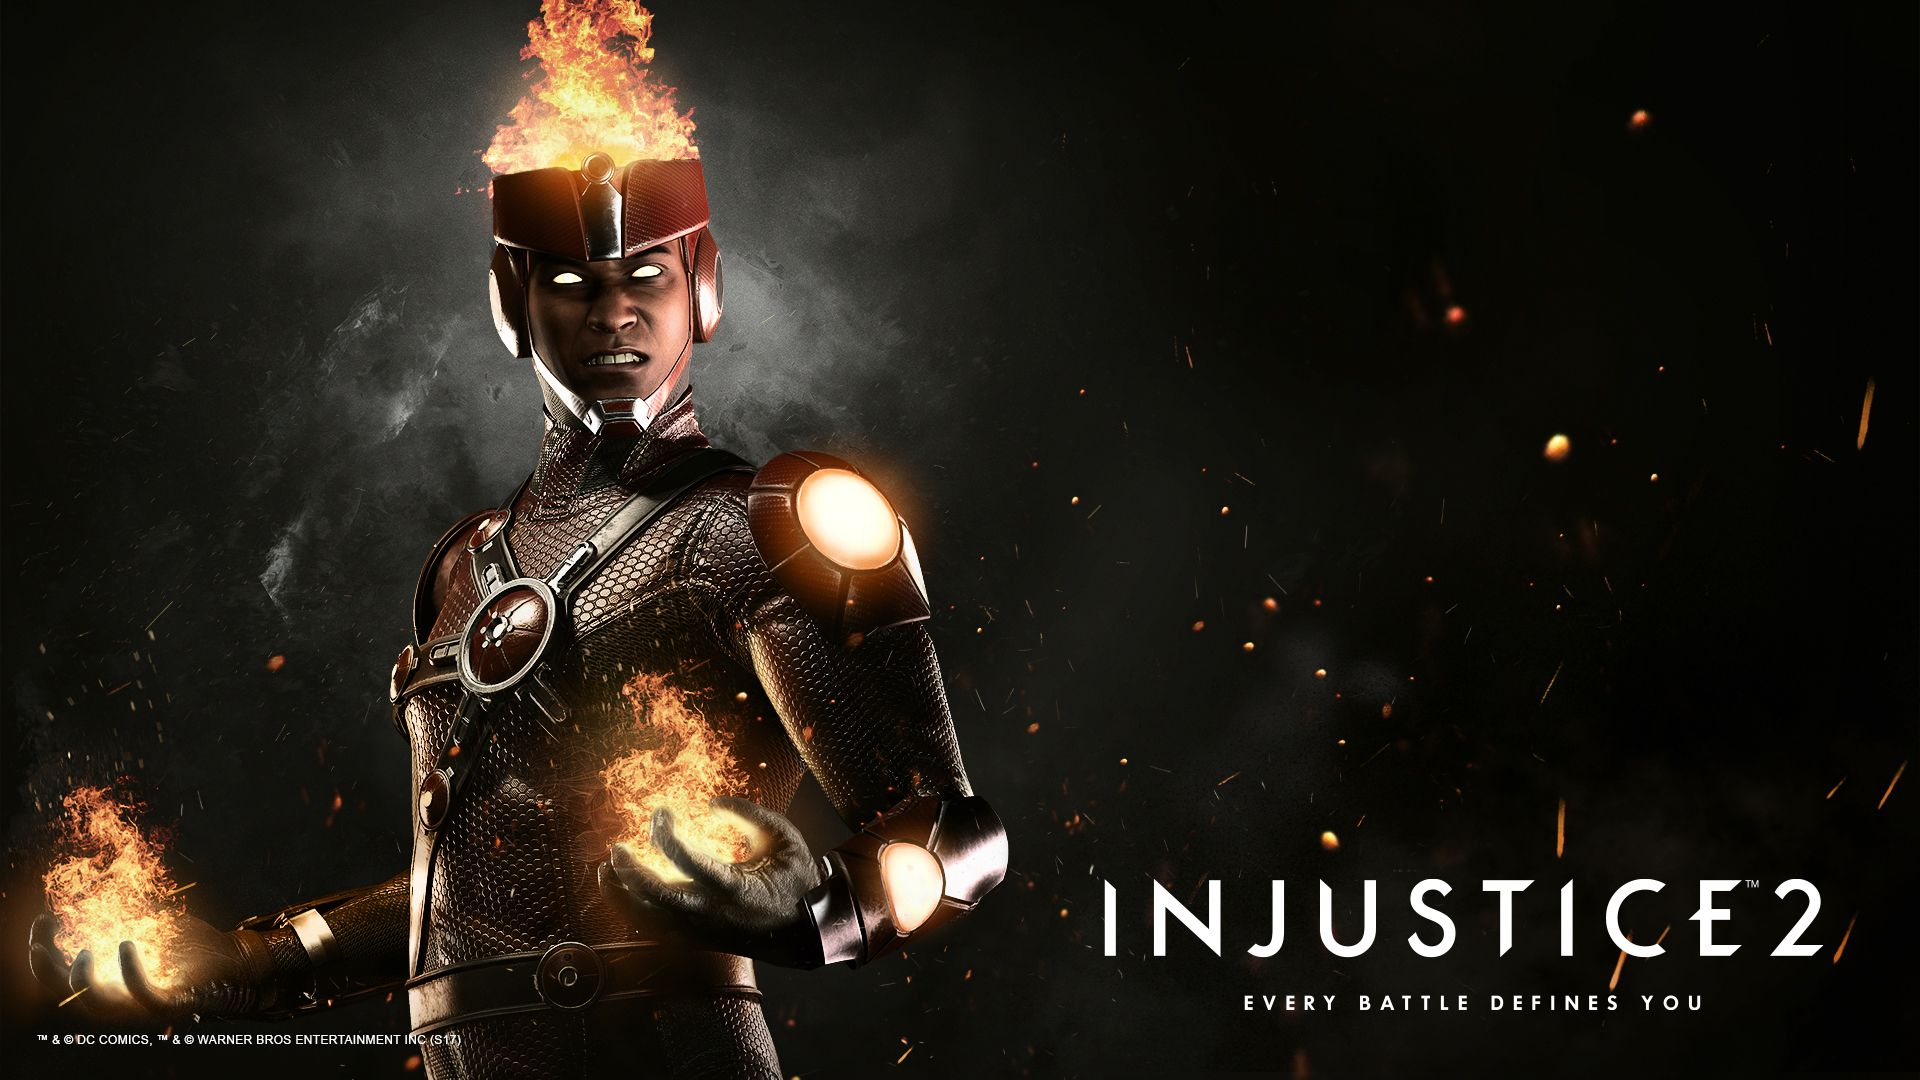 Injustice 2 Wallpaper Hd